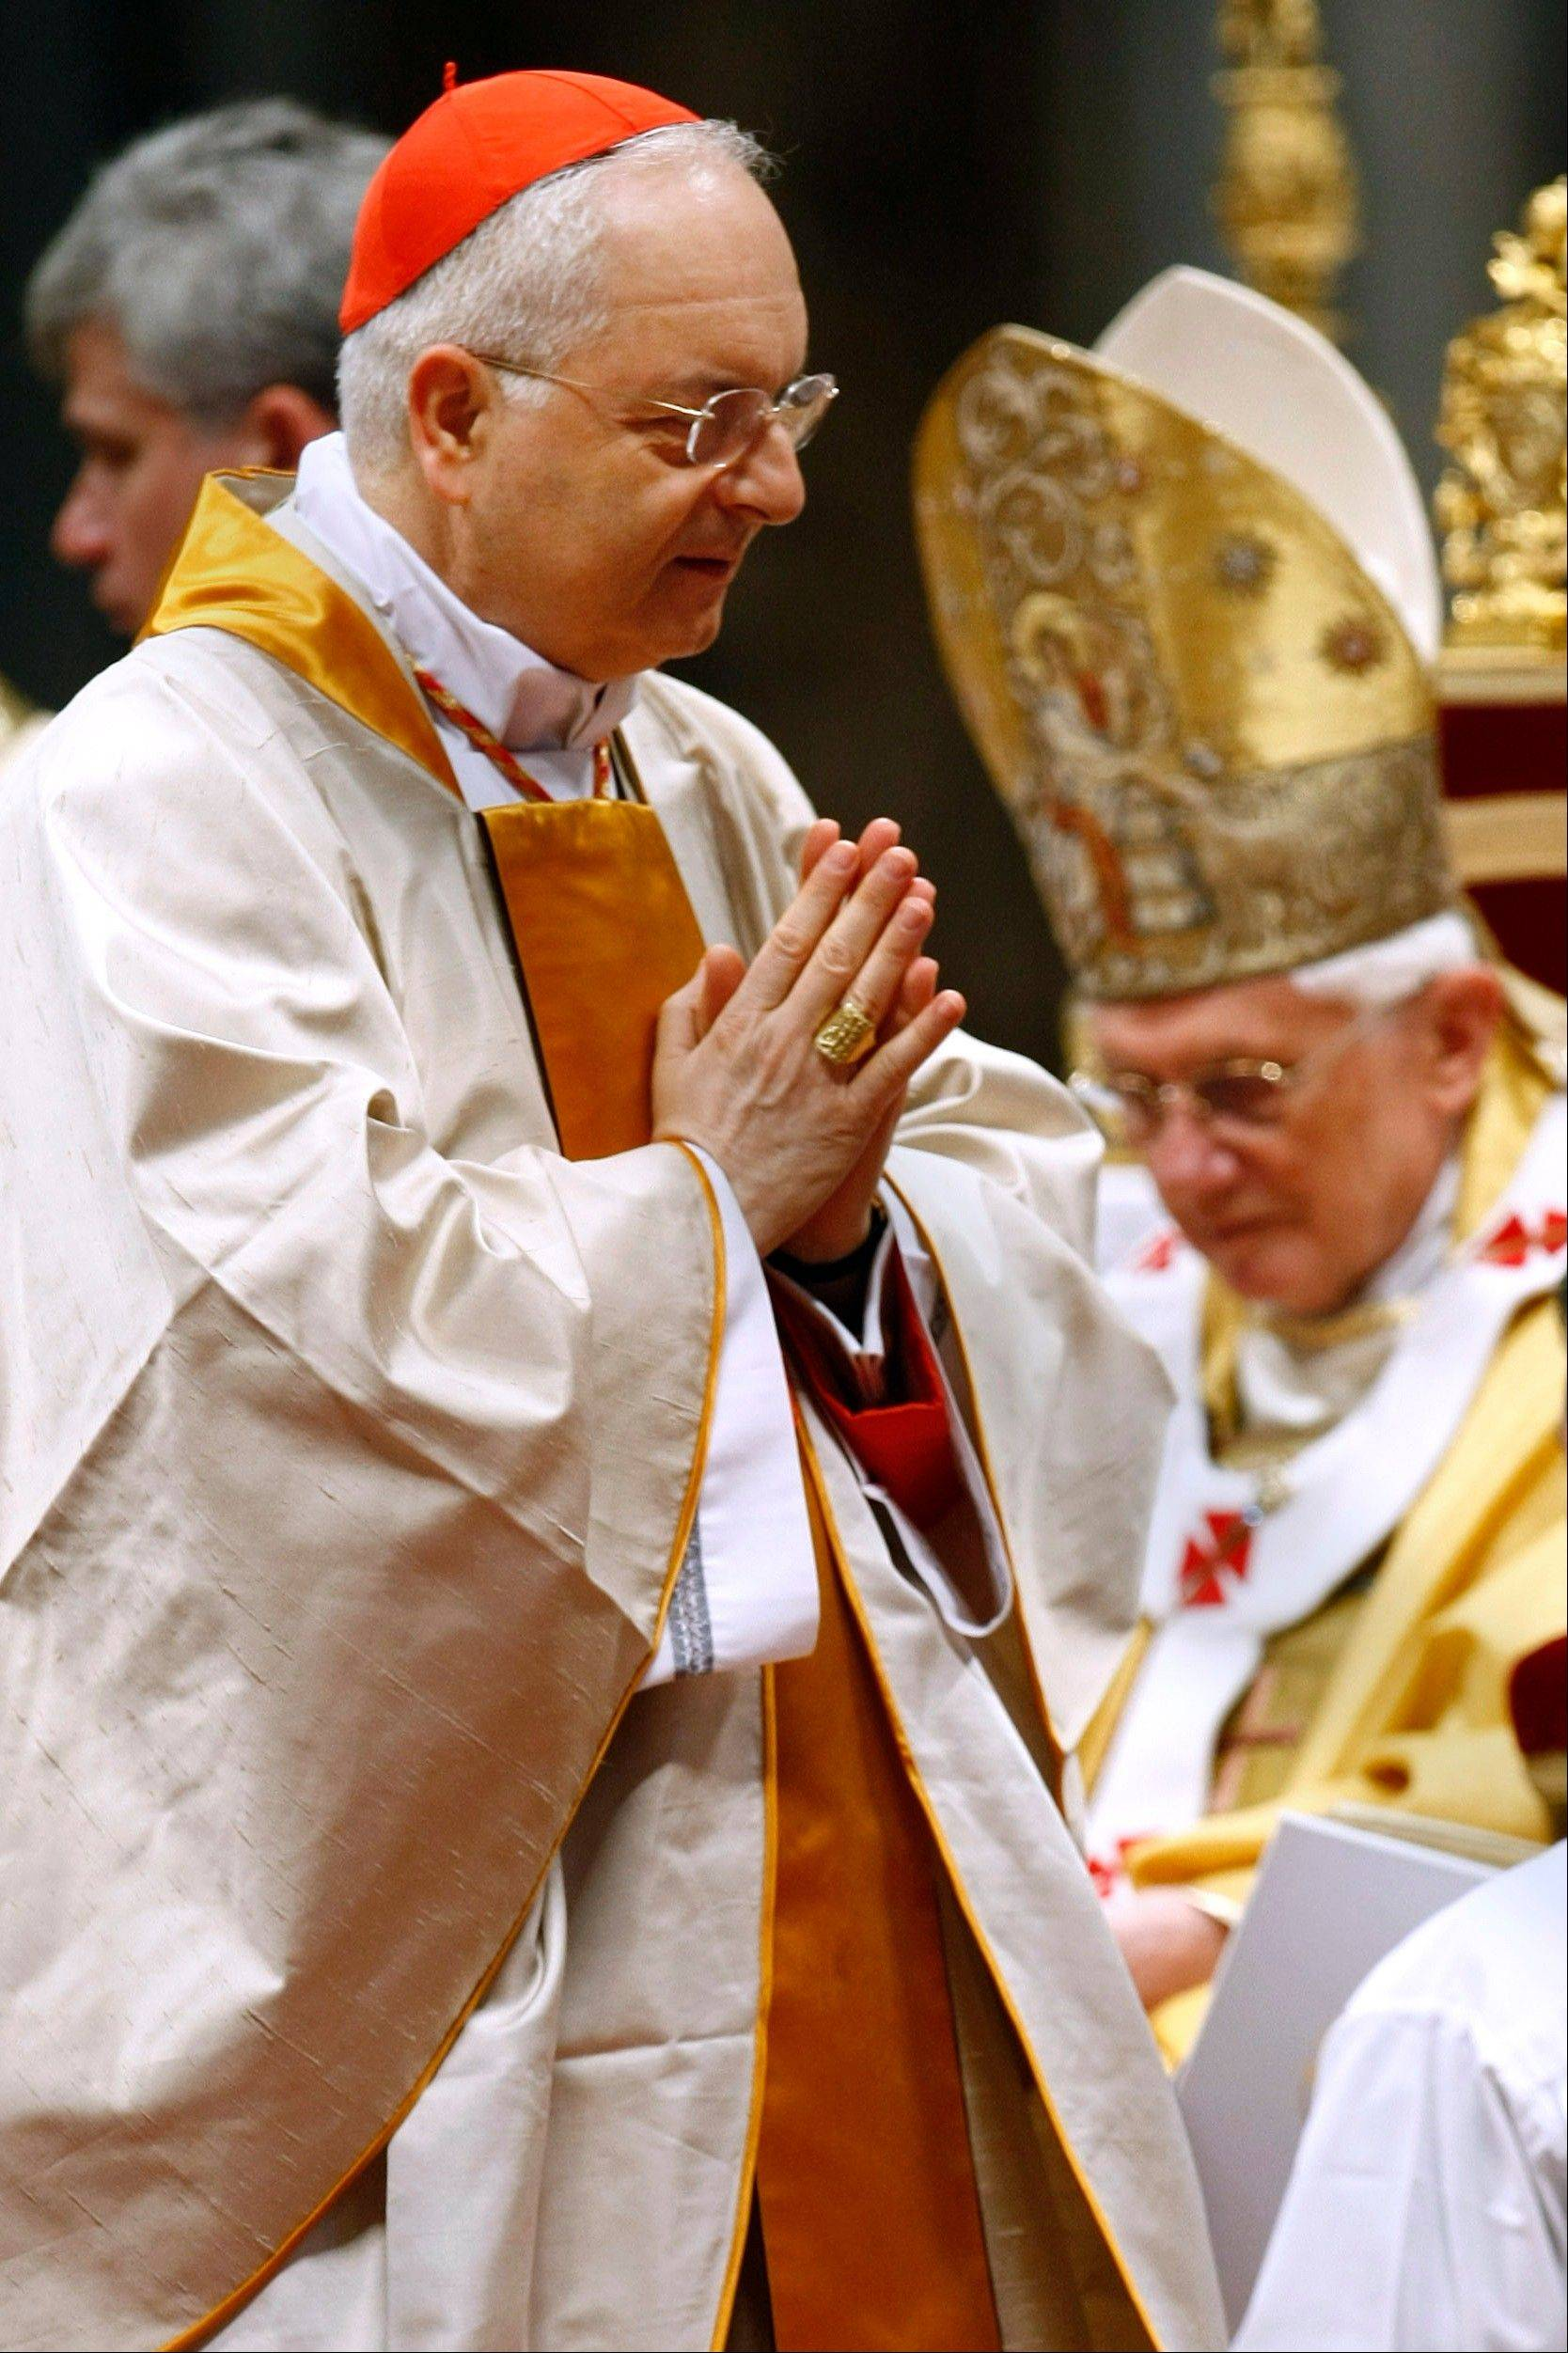 Associated Press/File photo/Nov. 21, 2010 Cardinal Mauro Piacenza walks past Pope Benedict XVI after receiving Cardinal�s ring during a Mass in St. Peter�s Basilica, at the Vatican. Pope Francis on Saturday effectively demoted a highly conservative Italian cardinal who led the Vatican�s department on clergy, while keeping in place a German prelate who wages the Catholic church�s crackdown on liberal U.S. nuns and helps craft its sex-abuse response. Francis removed Cardinal Mauro Piacenza, with a reputation for being highly traditional on matters of liturgy and the question of priestly celibacy, from the important post of prefect of the congregation for clergy. Piacenza had only held that post since 2010, when he was appointed by Francis� predecessor, Benedict XVI, whose retro tastes in papal vestments and preference for traditional ceremonies found a supporter in the Italian prelate.